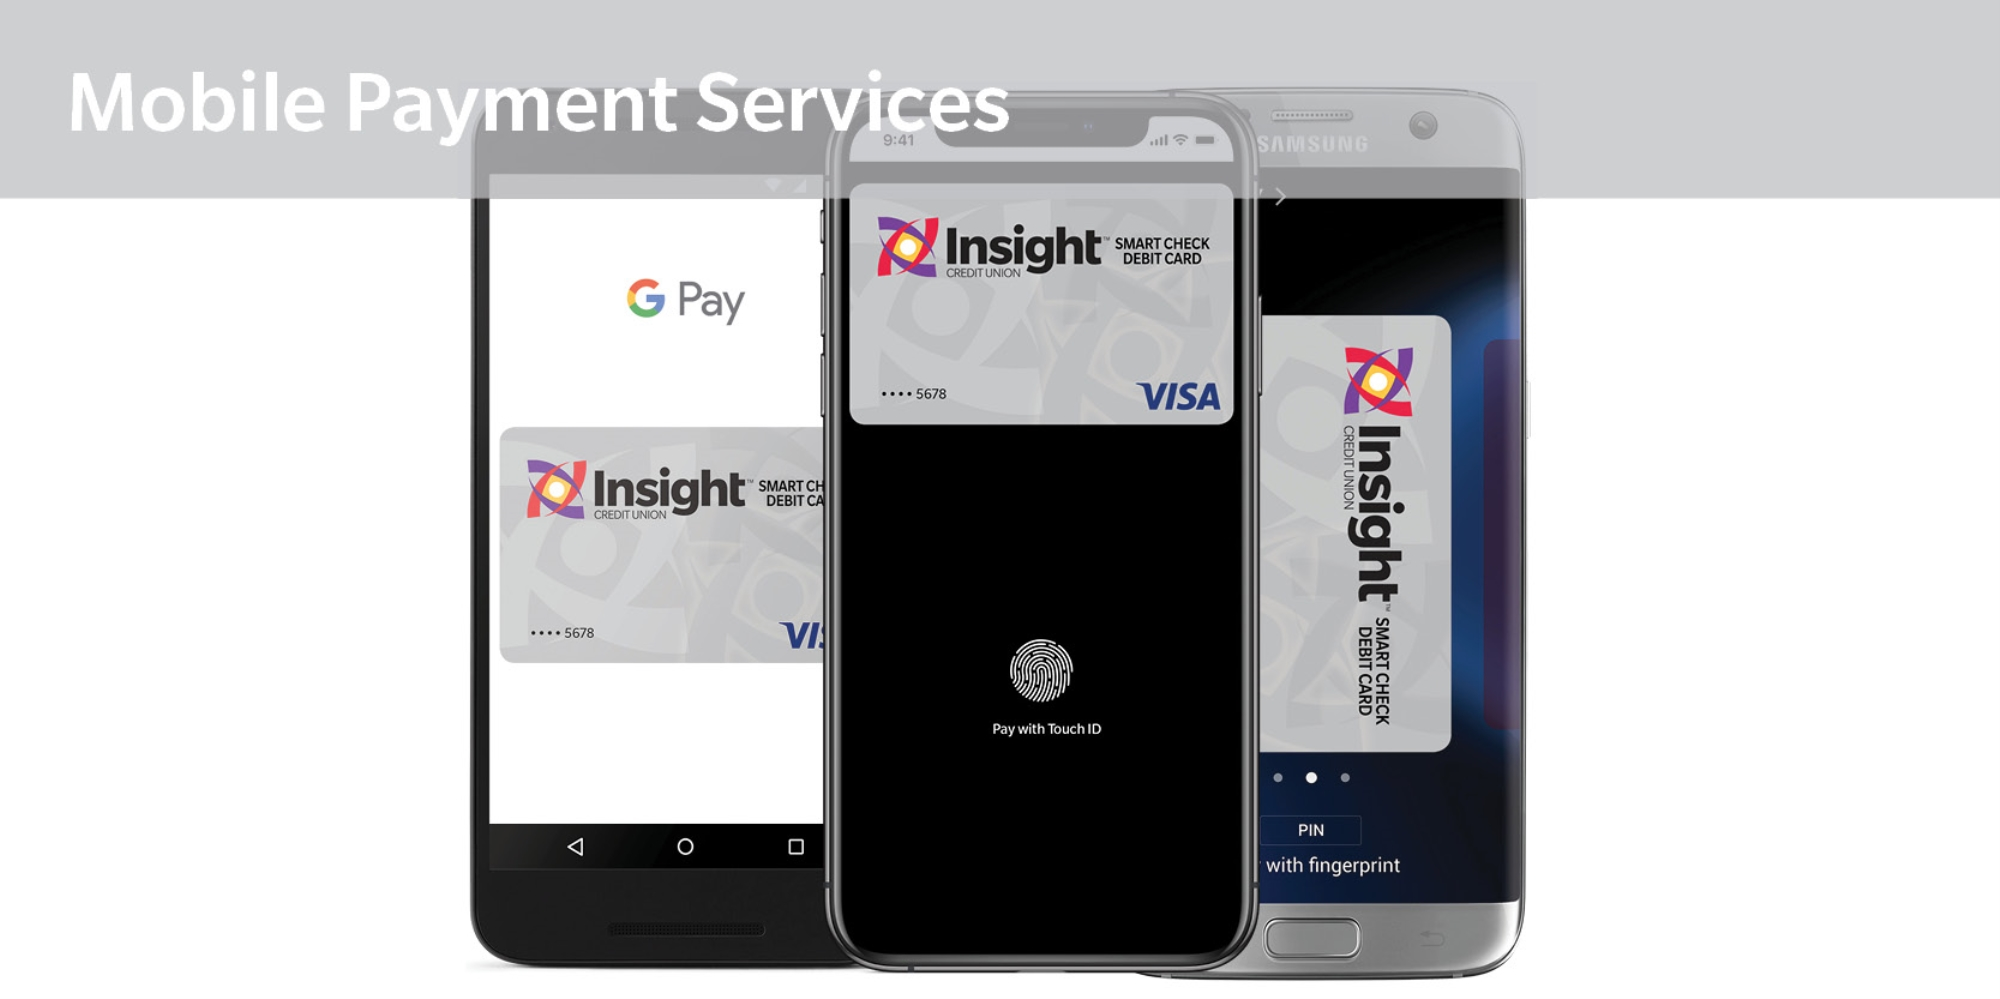 Mobile Payment Services